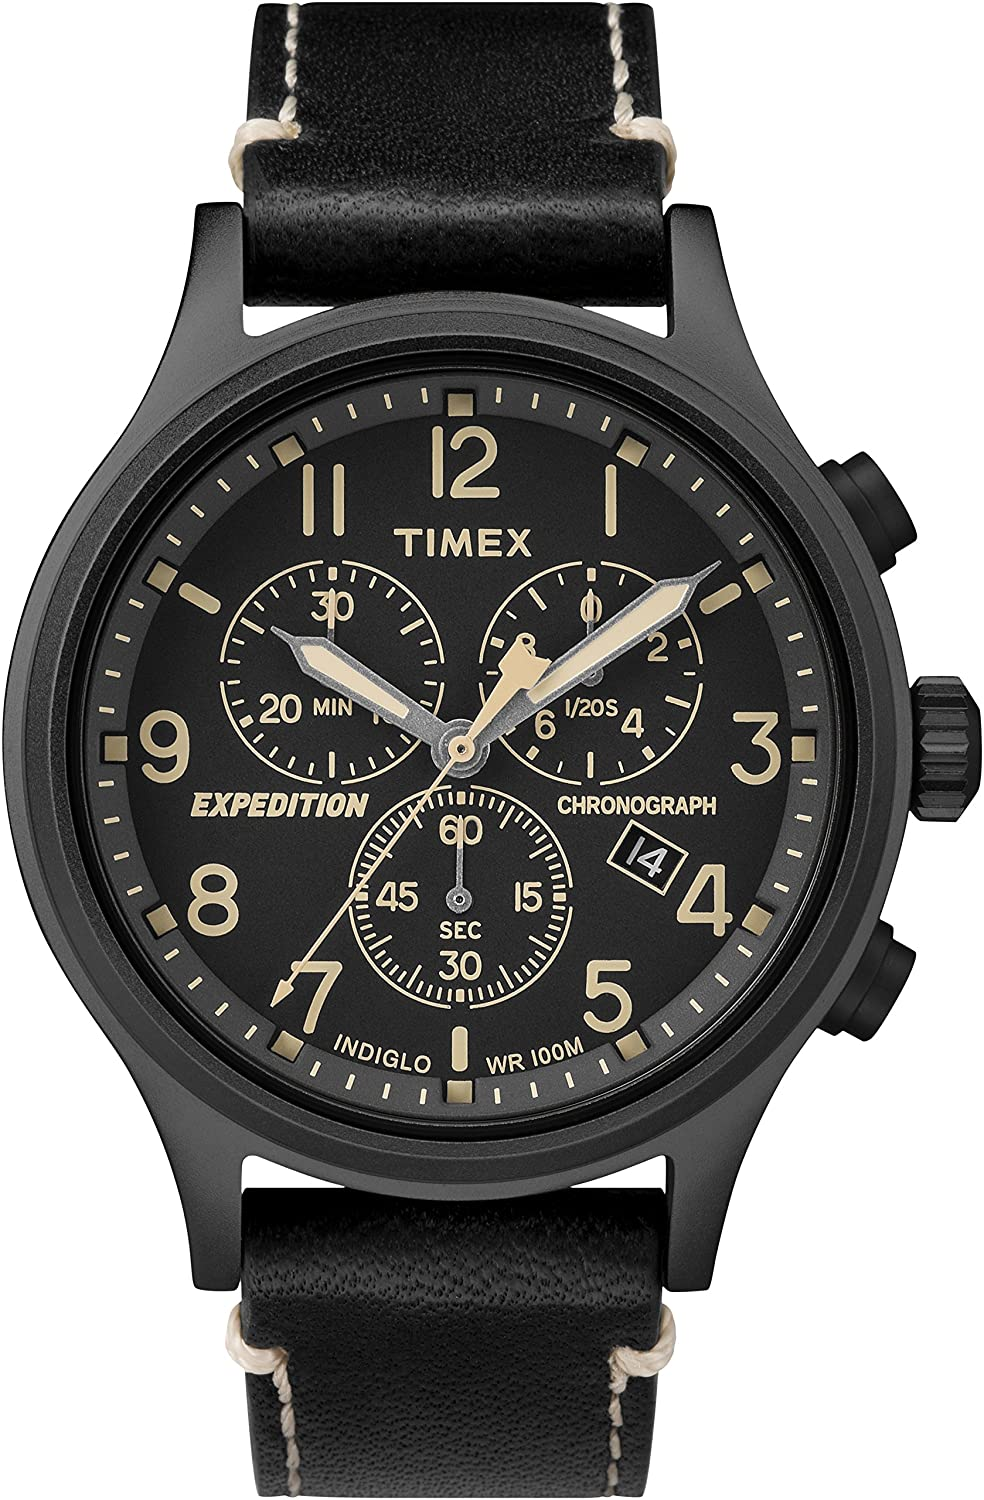 Timex Expeditoin Scout Chrono Watch